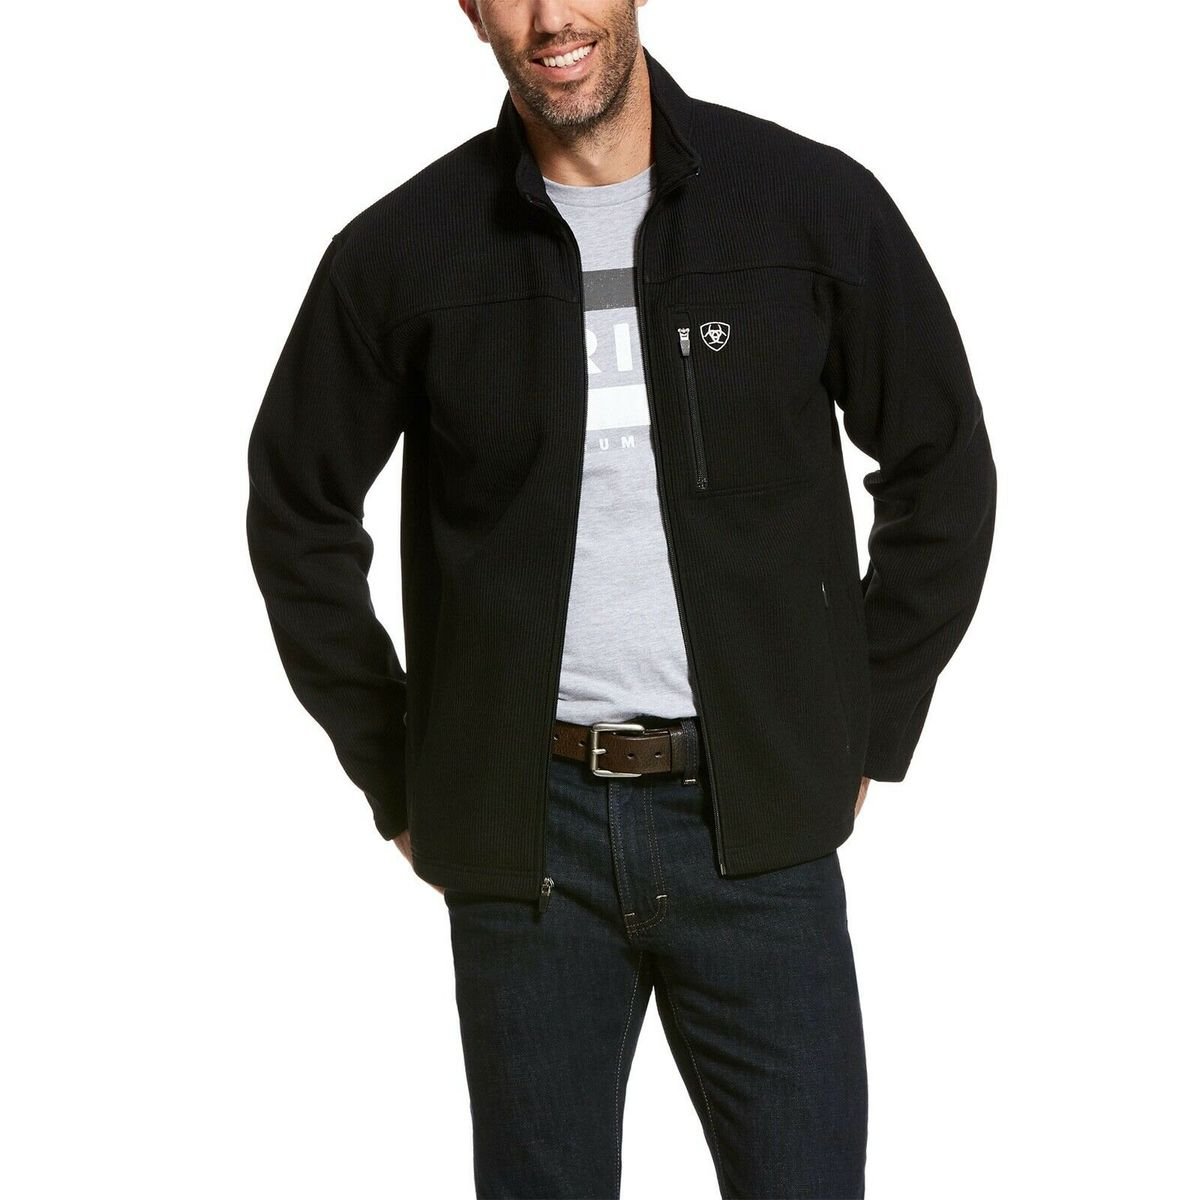 Men's Ariat Black Duratek Fleece Jacket, 10028388